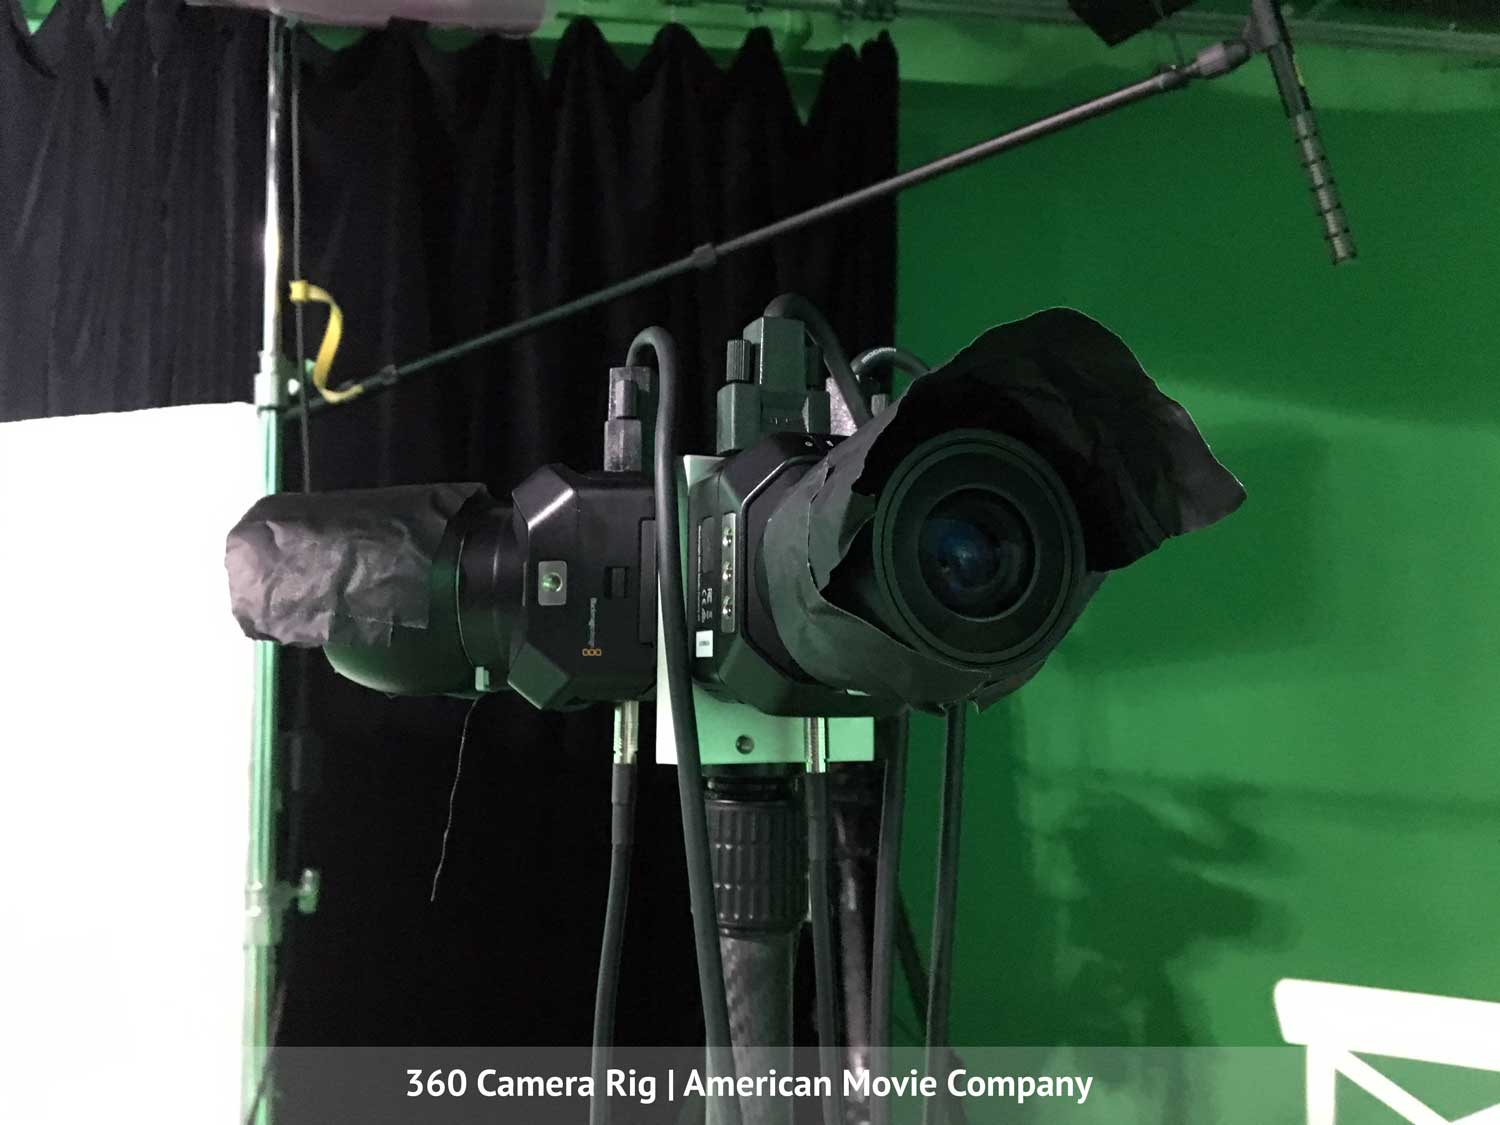 360 Virtual Reality Video Production - Why You Should Film Your Next Project in VR 1